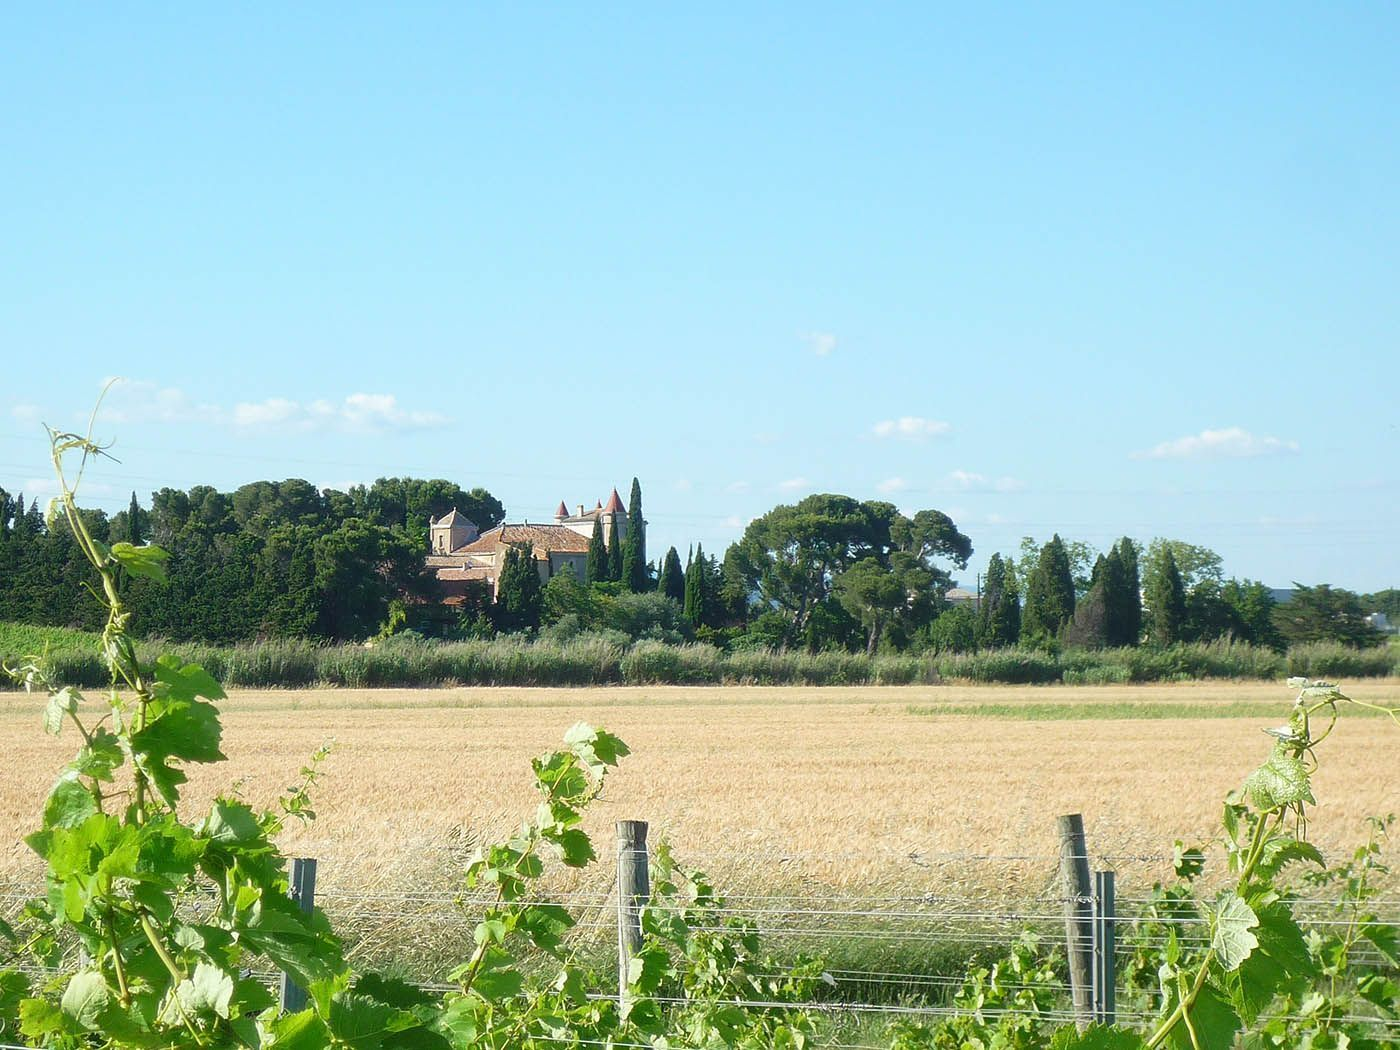 Castle's view from the vines